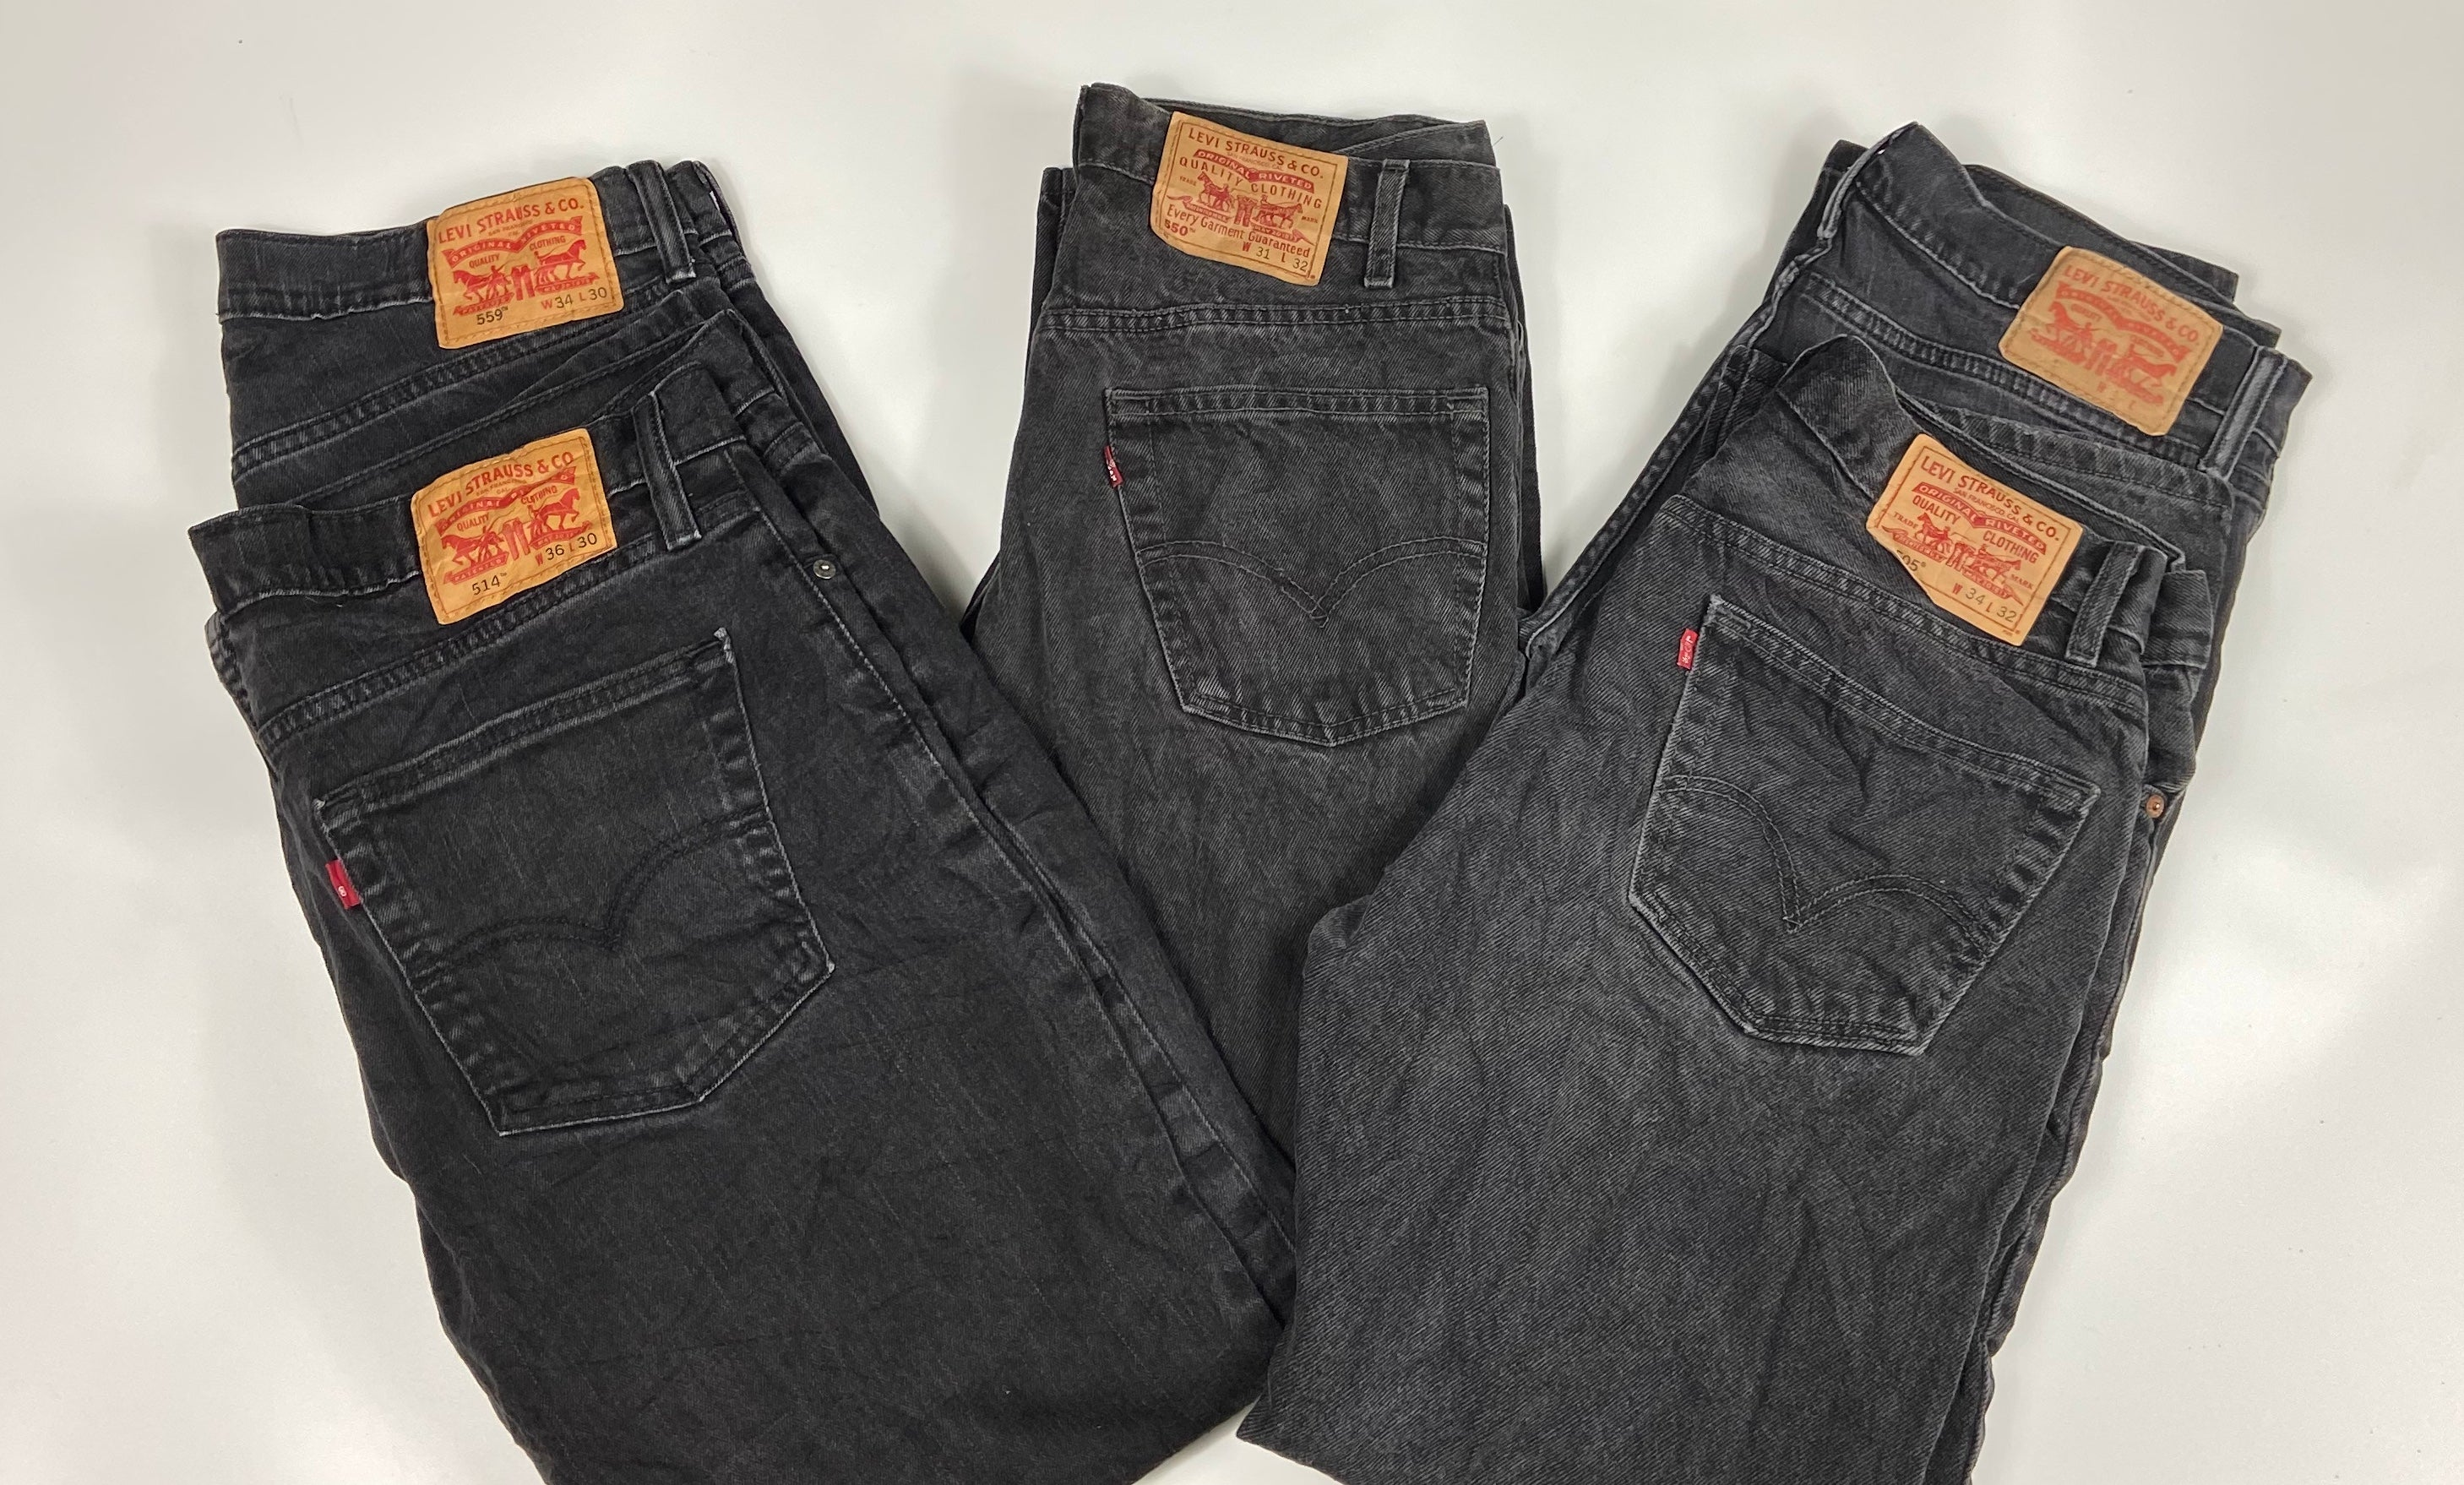 Vintage Original Levi's 501 Button Fly Jeans Waist 34 Length 36